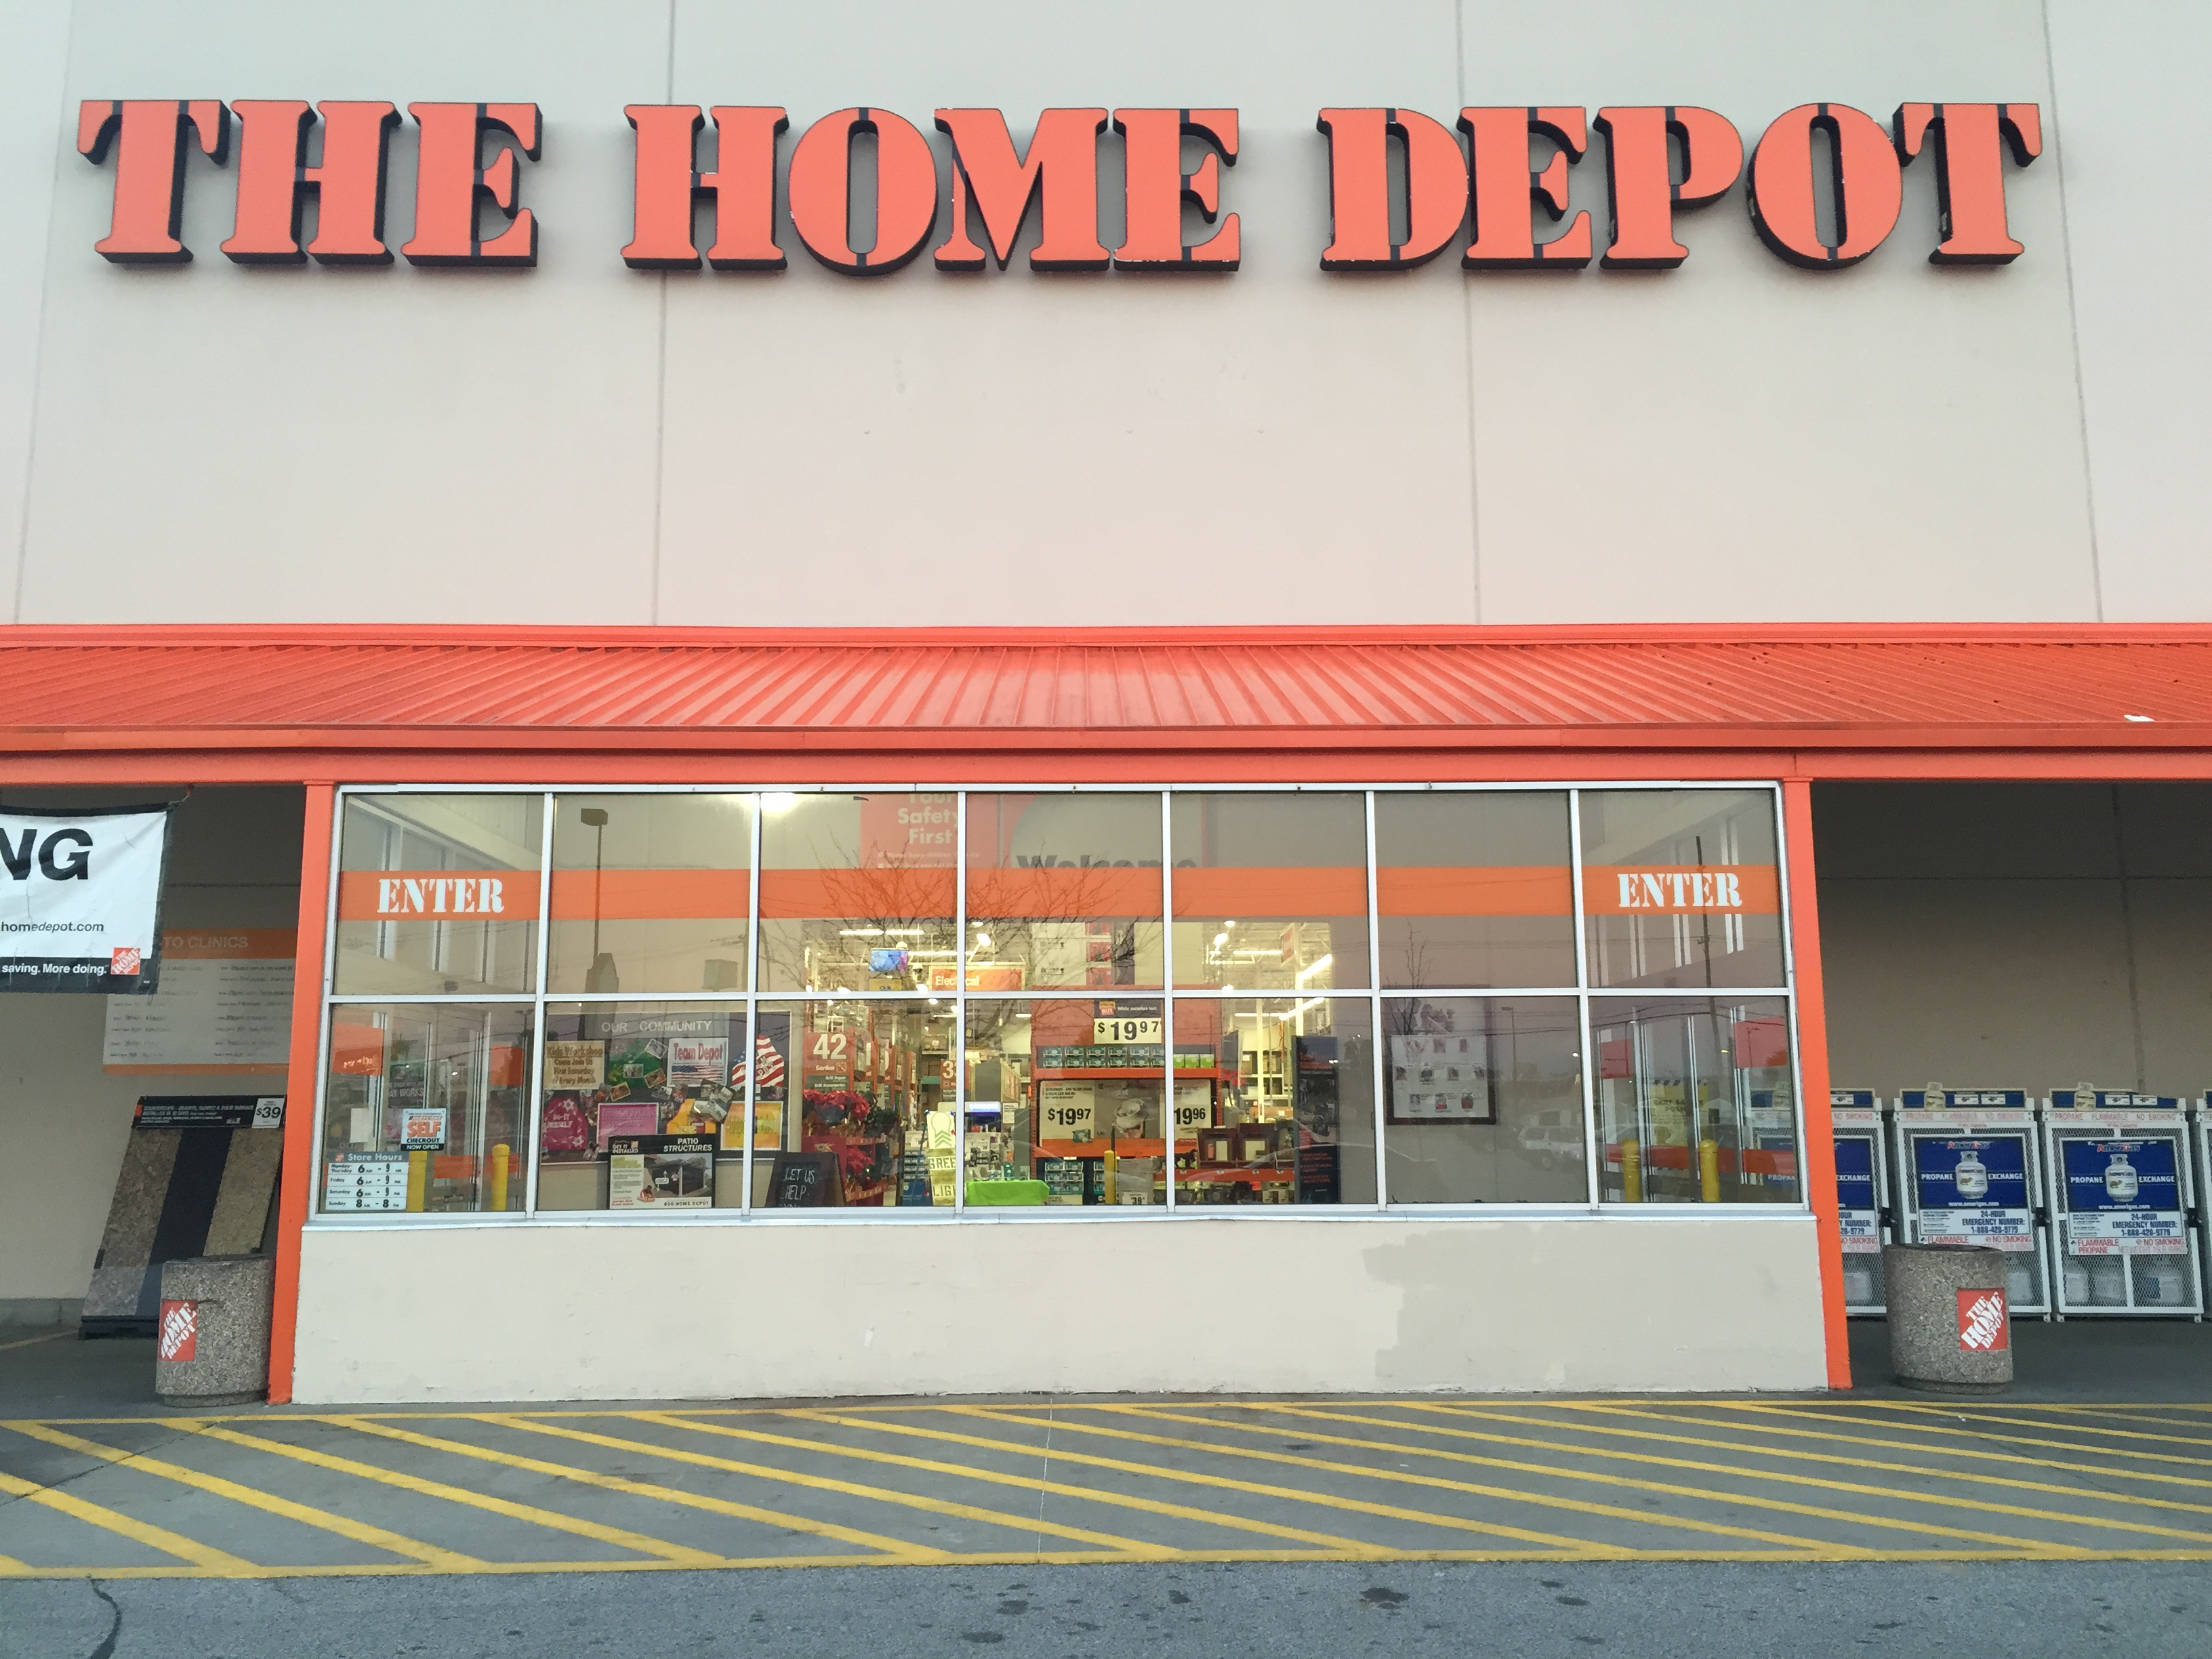 The Home Depot 1000 East Hwy 131 Clarksville IN Home Depot MapQuest